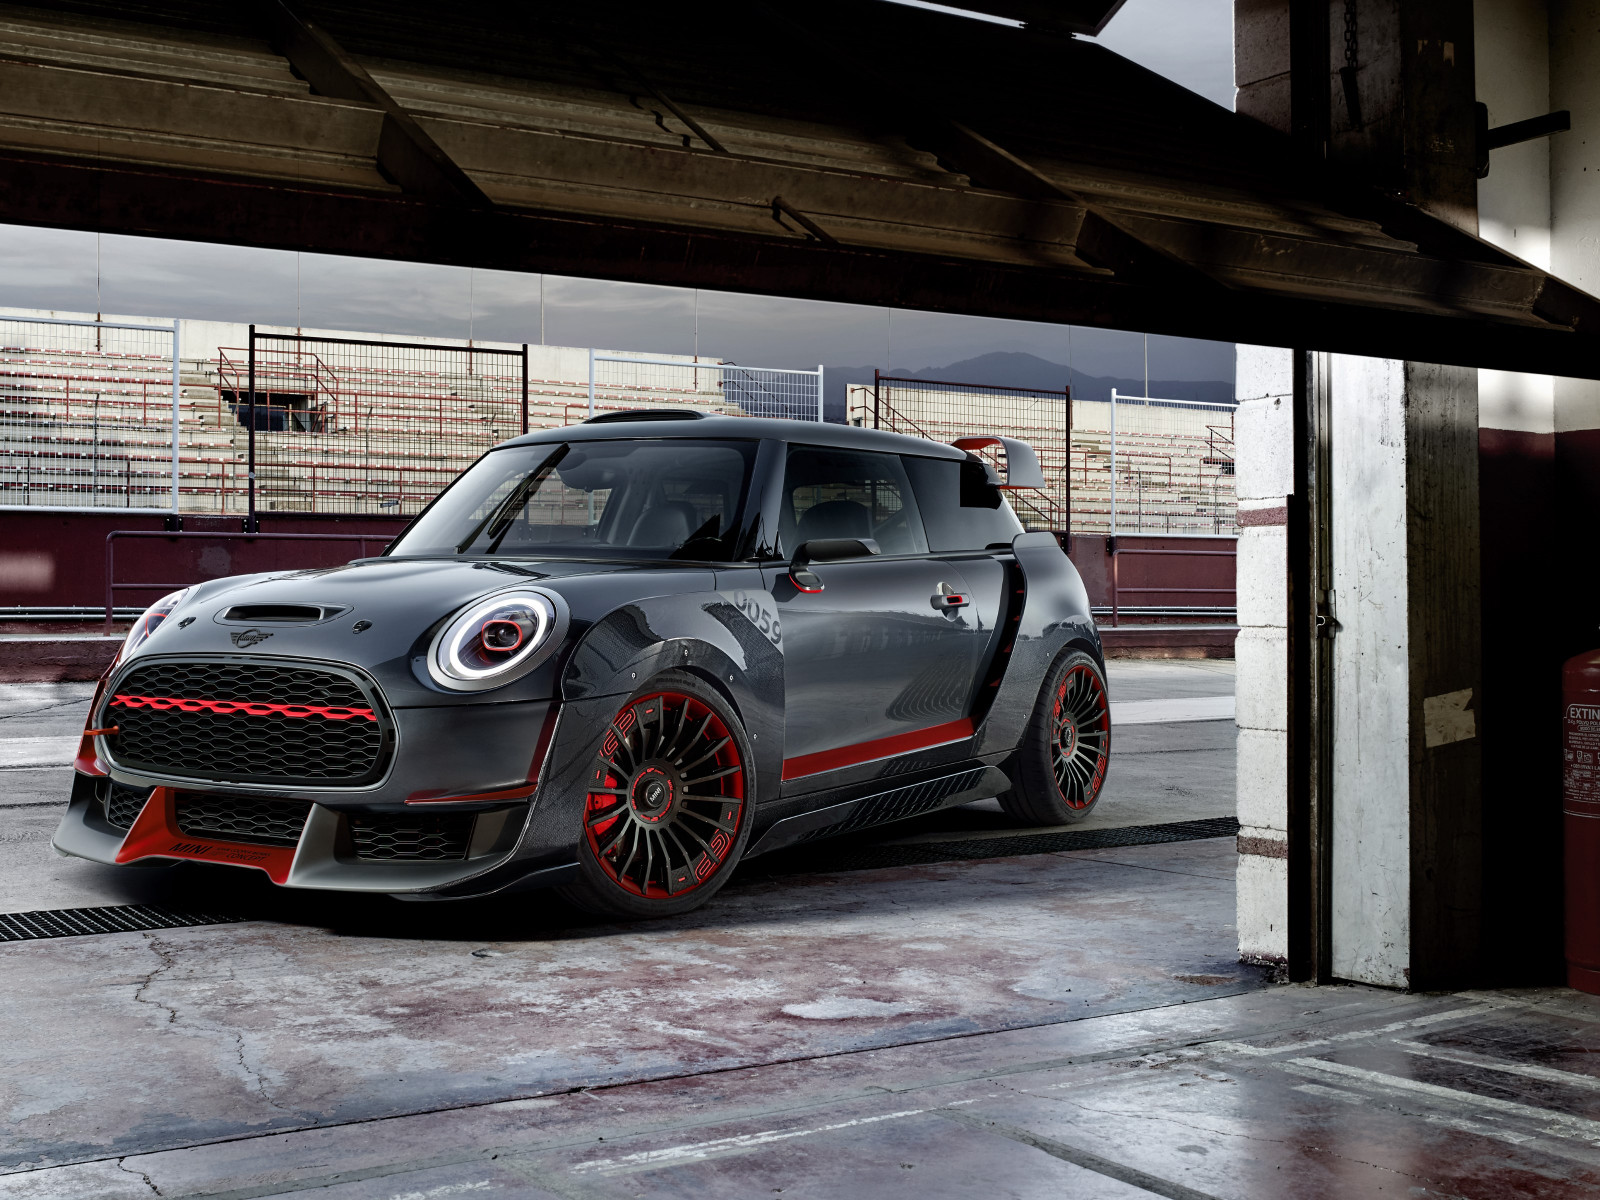 MINI John Cooper Works wallpaper 1600x1200